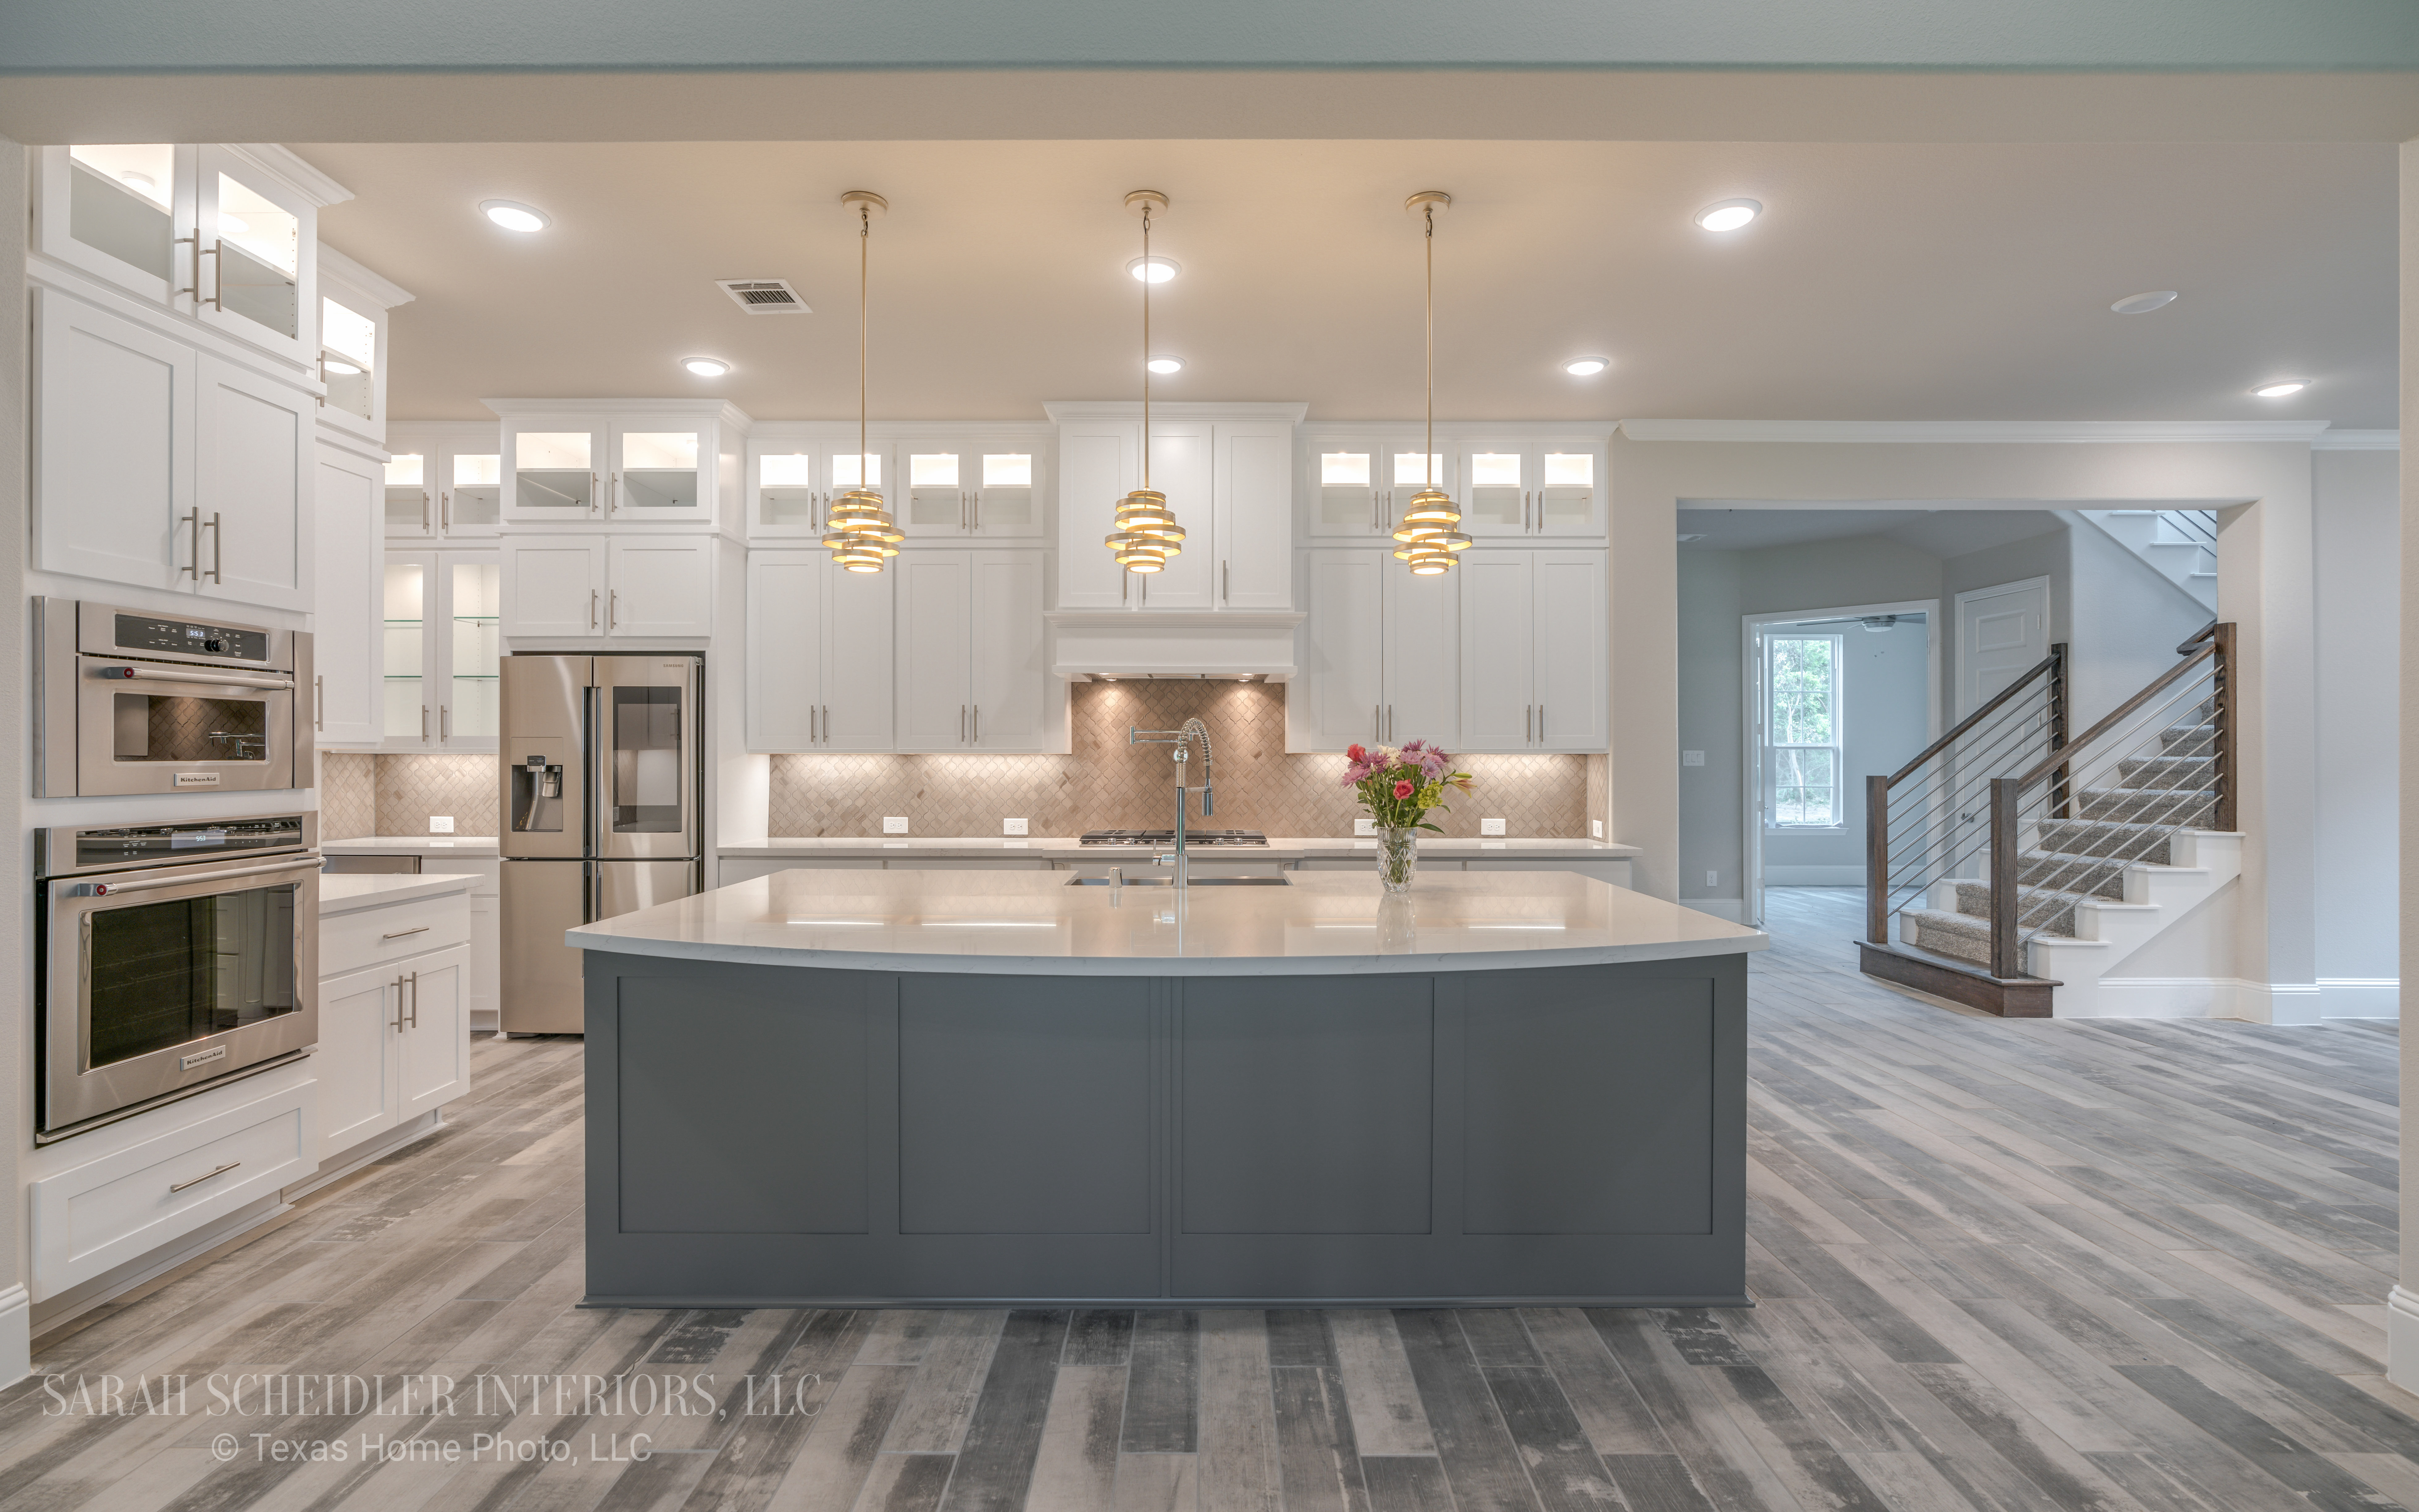 White and Grey Open-Concept Kitchen with White Kitchen Cabinets, Grey Island, Silestone Quartz Countertops, Chrome Finishes, Modern Pendants, Wood Tile Flooring